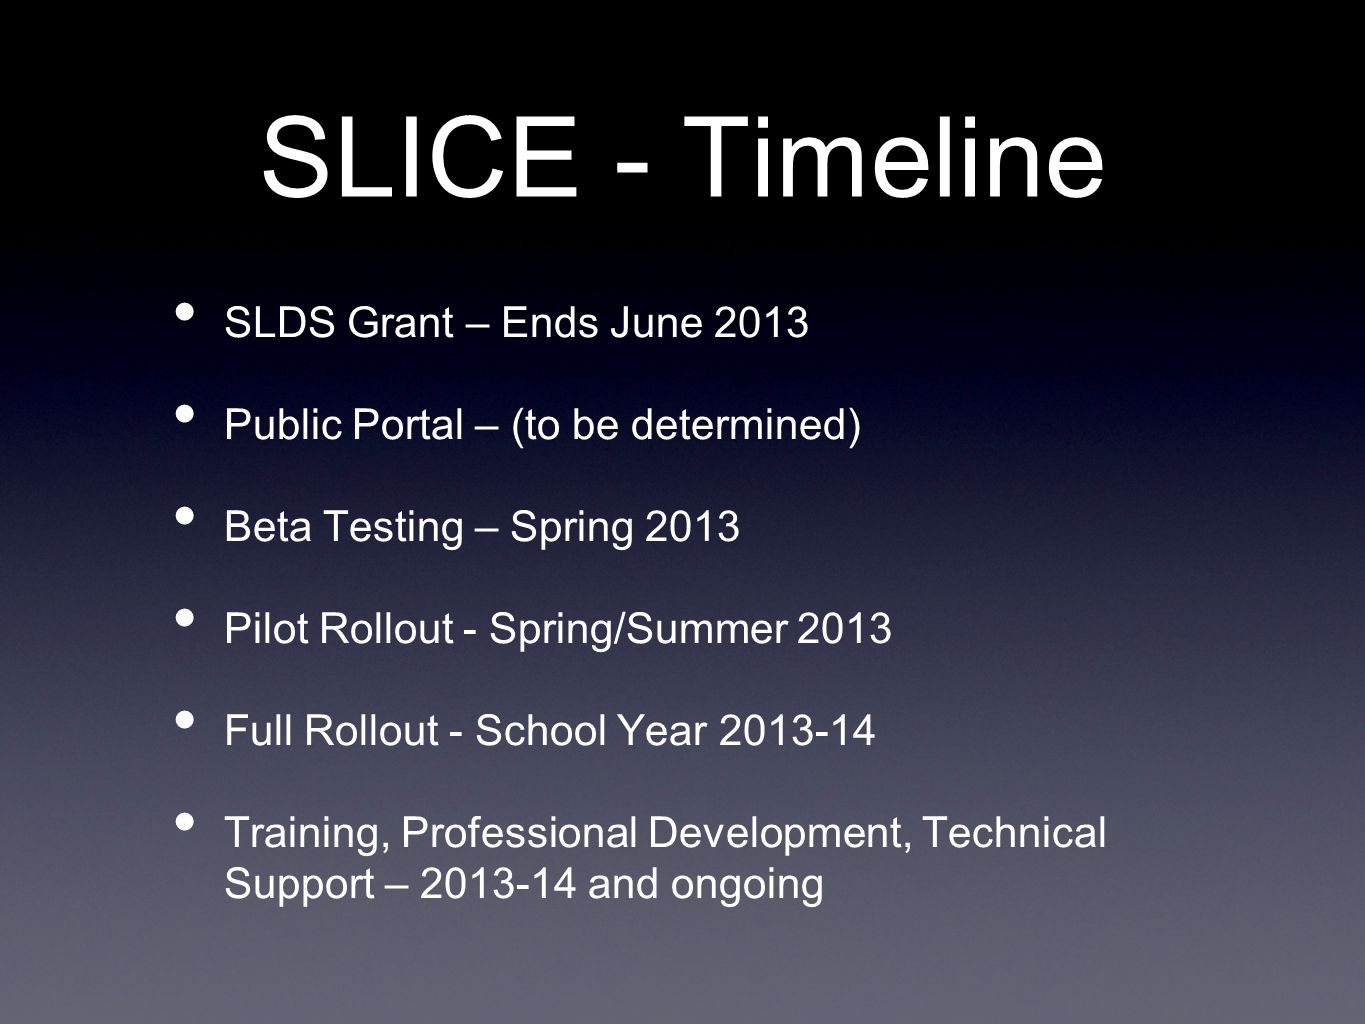 SLICE - Timeline SLDS Grant – Ends June 2013 Public Portal – (to be determined) Beta Testing – Spring 2013 Pilot Rollout - Spring/Summer 2013 Full Rollout - School Year 2013-14 Training, Professional Development, Technical Support – 2013-14 and ongoing